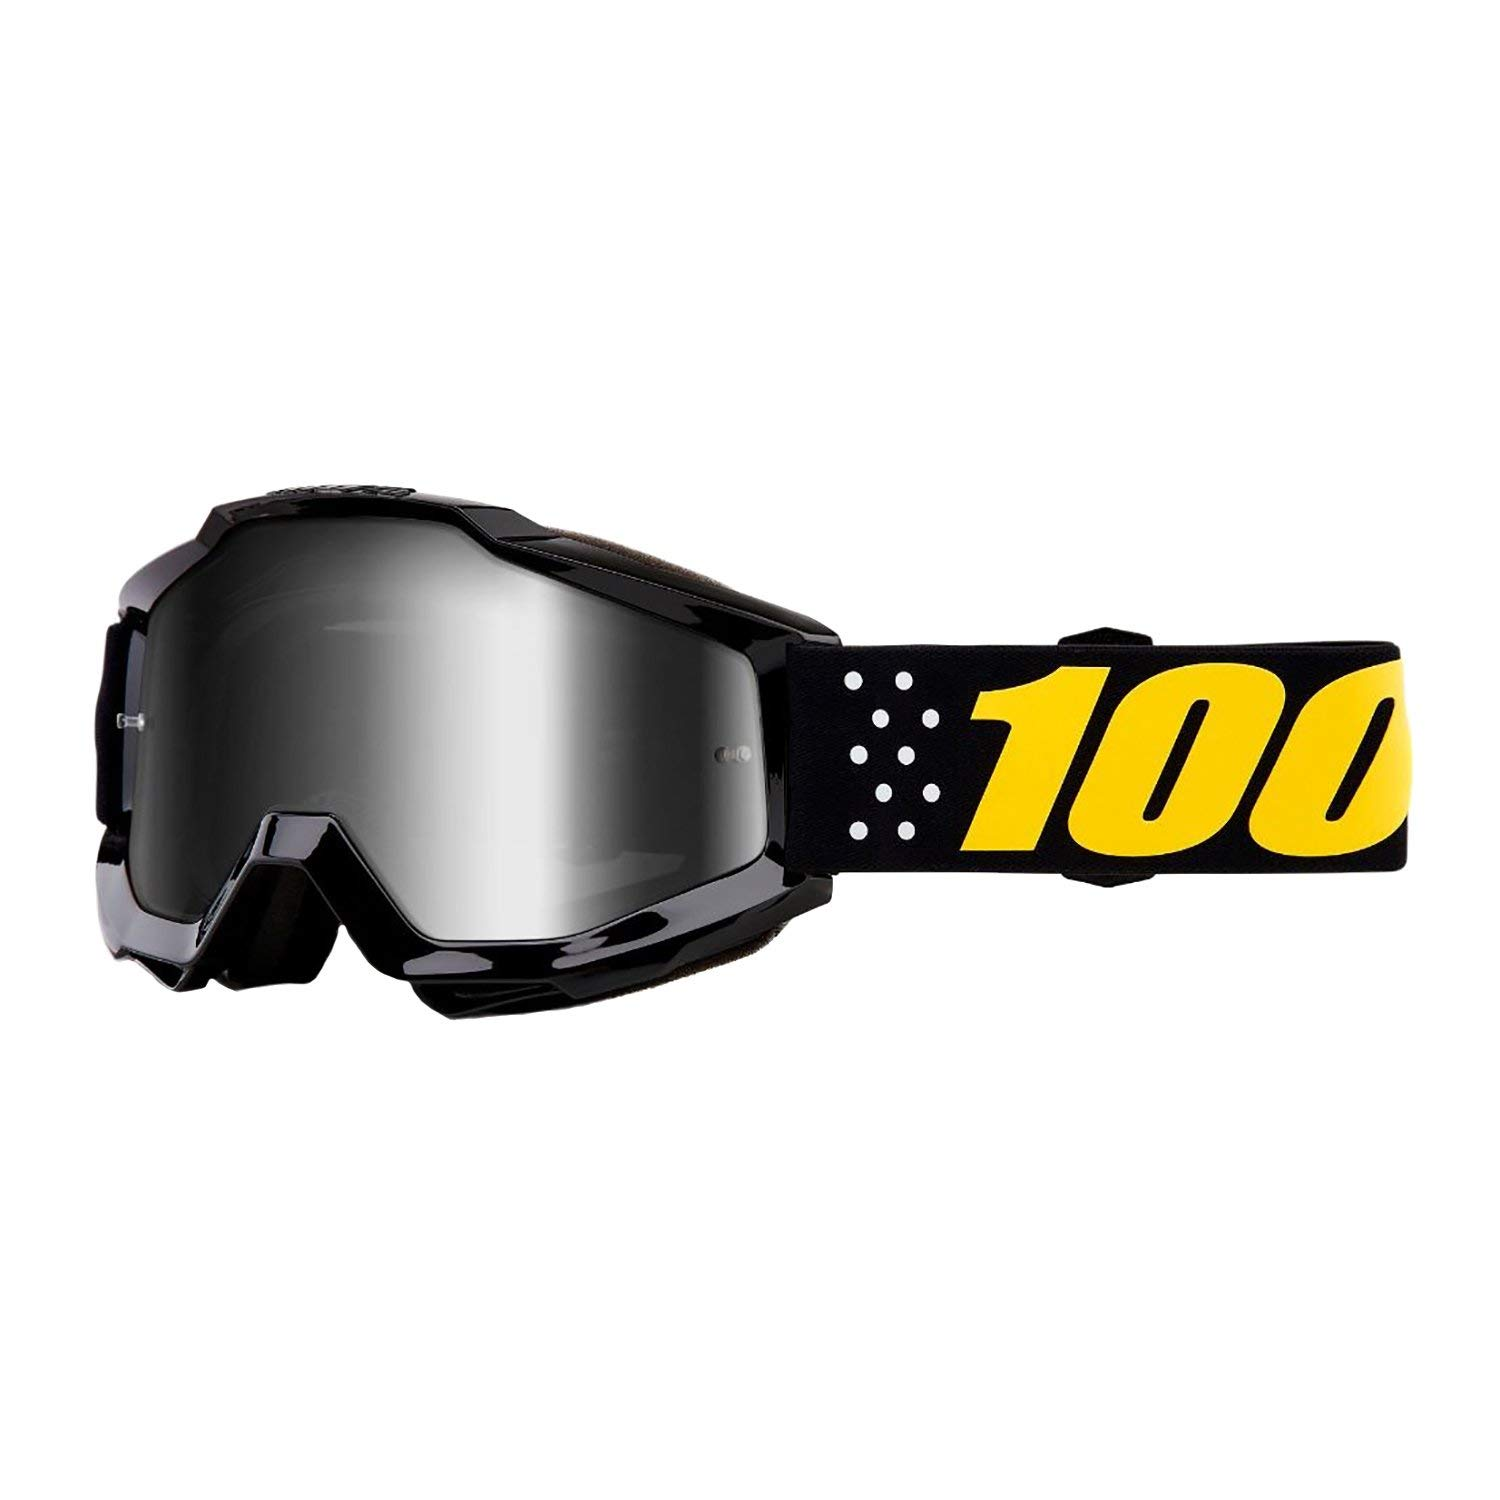 100% Accuri Youth Boys' Off-Road Motorcycle Goggles - Pistol/Mirror Silver/One Size by 100%